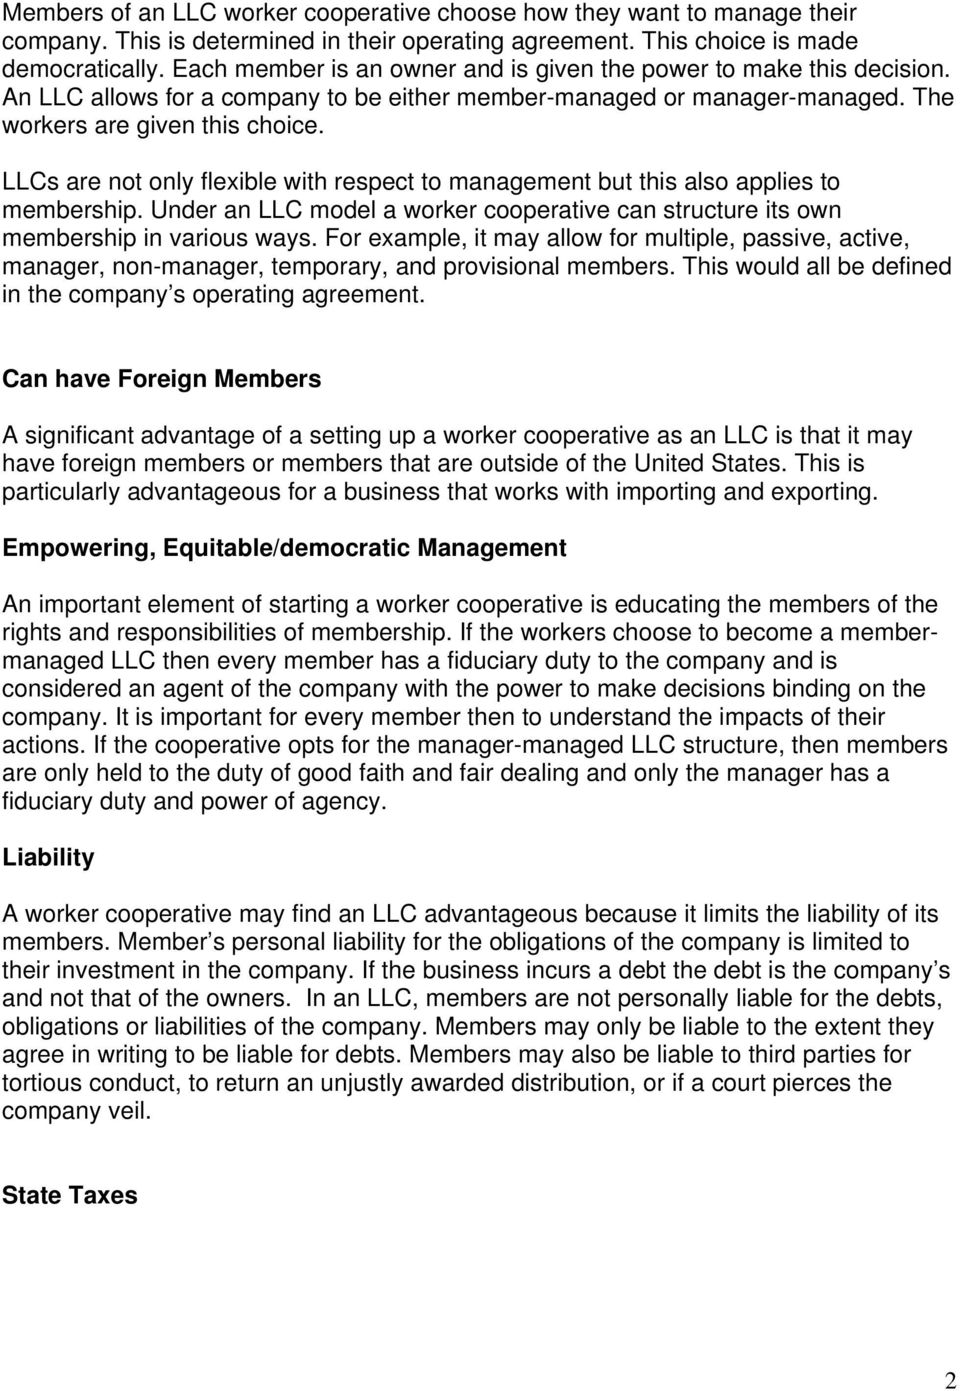 LLCs are not only flexible with respect to management but this also applies to membership. Under an LLC model a worker cooperative can structure its own membership in various ways.